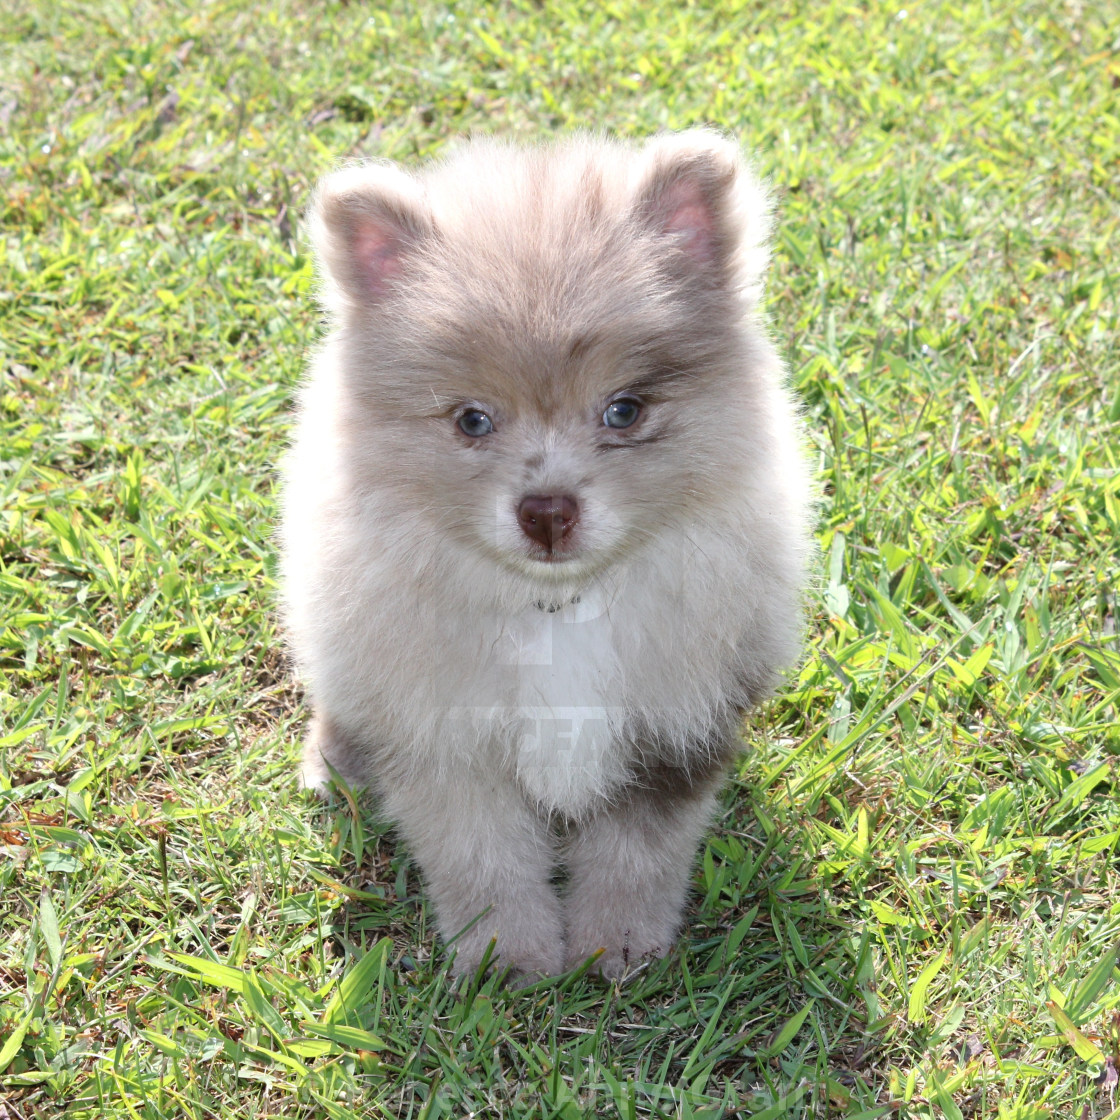 Chocolate Merle Pomeranian Puppy License Download Or Print For 9 74 Photos Picfair